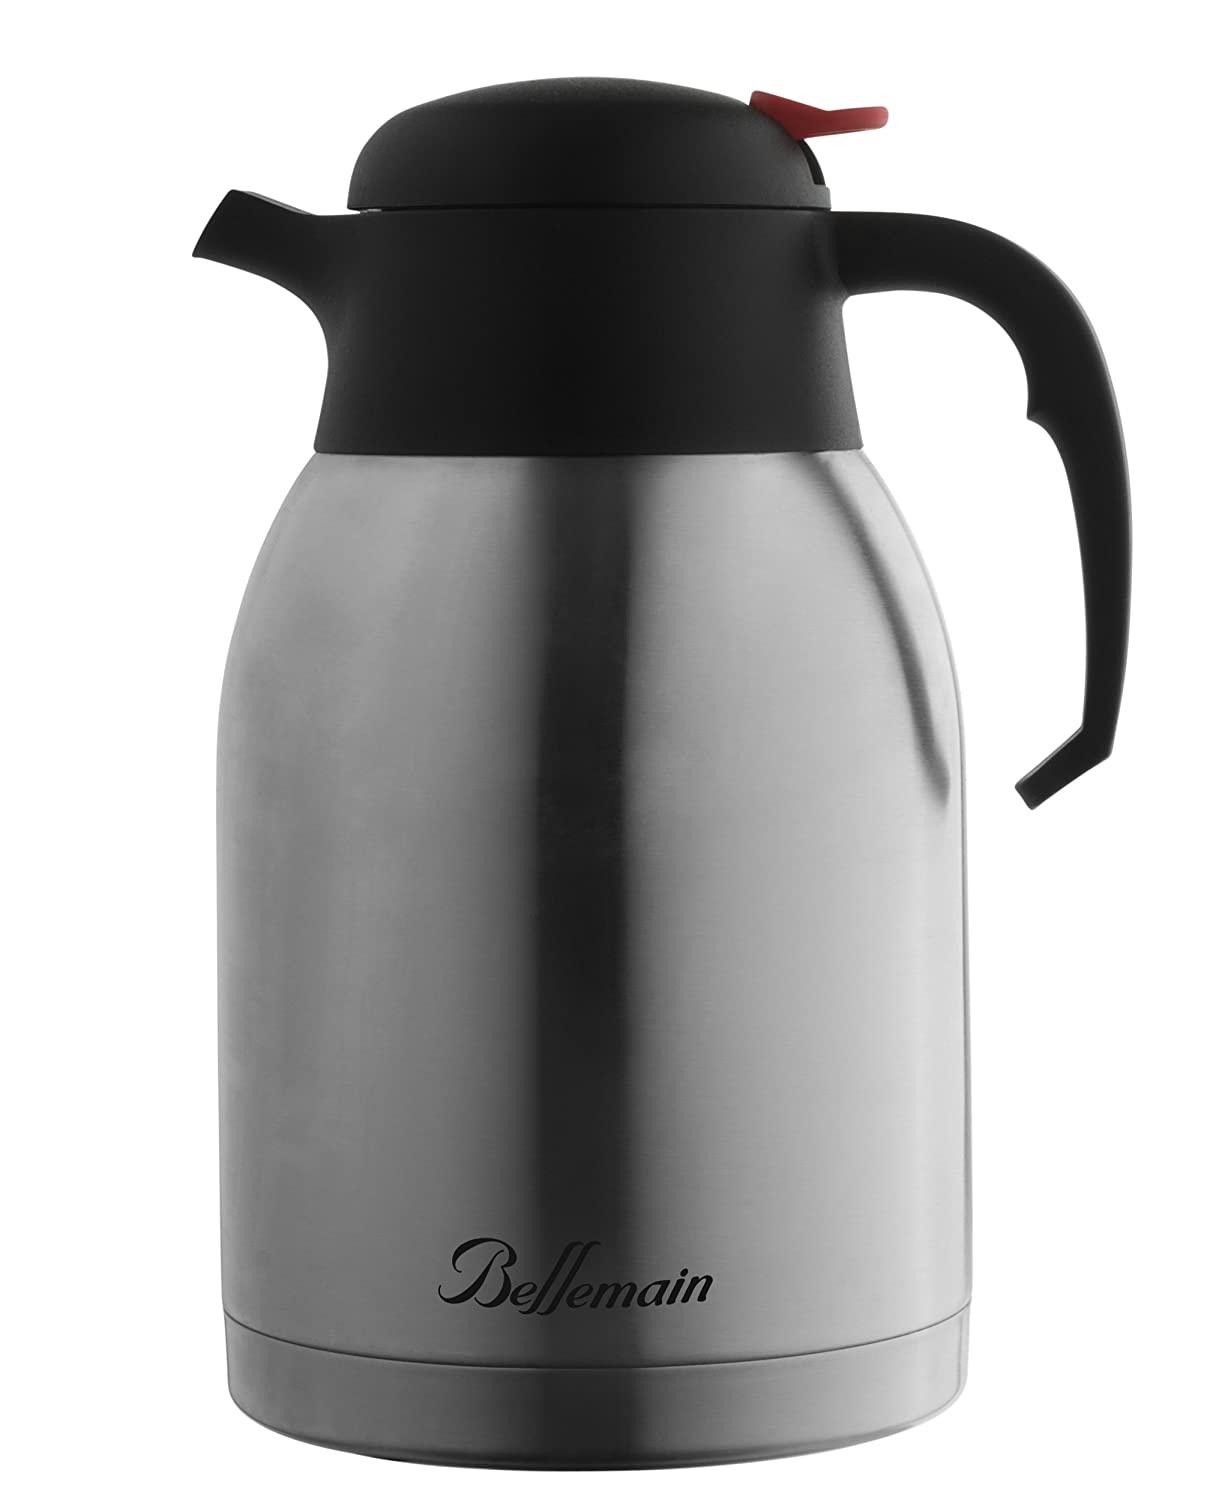 Bellemain Premium Thermal Coffee Carafe Stainless Steel Review